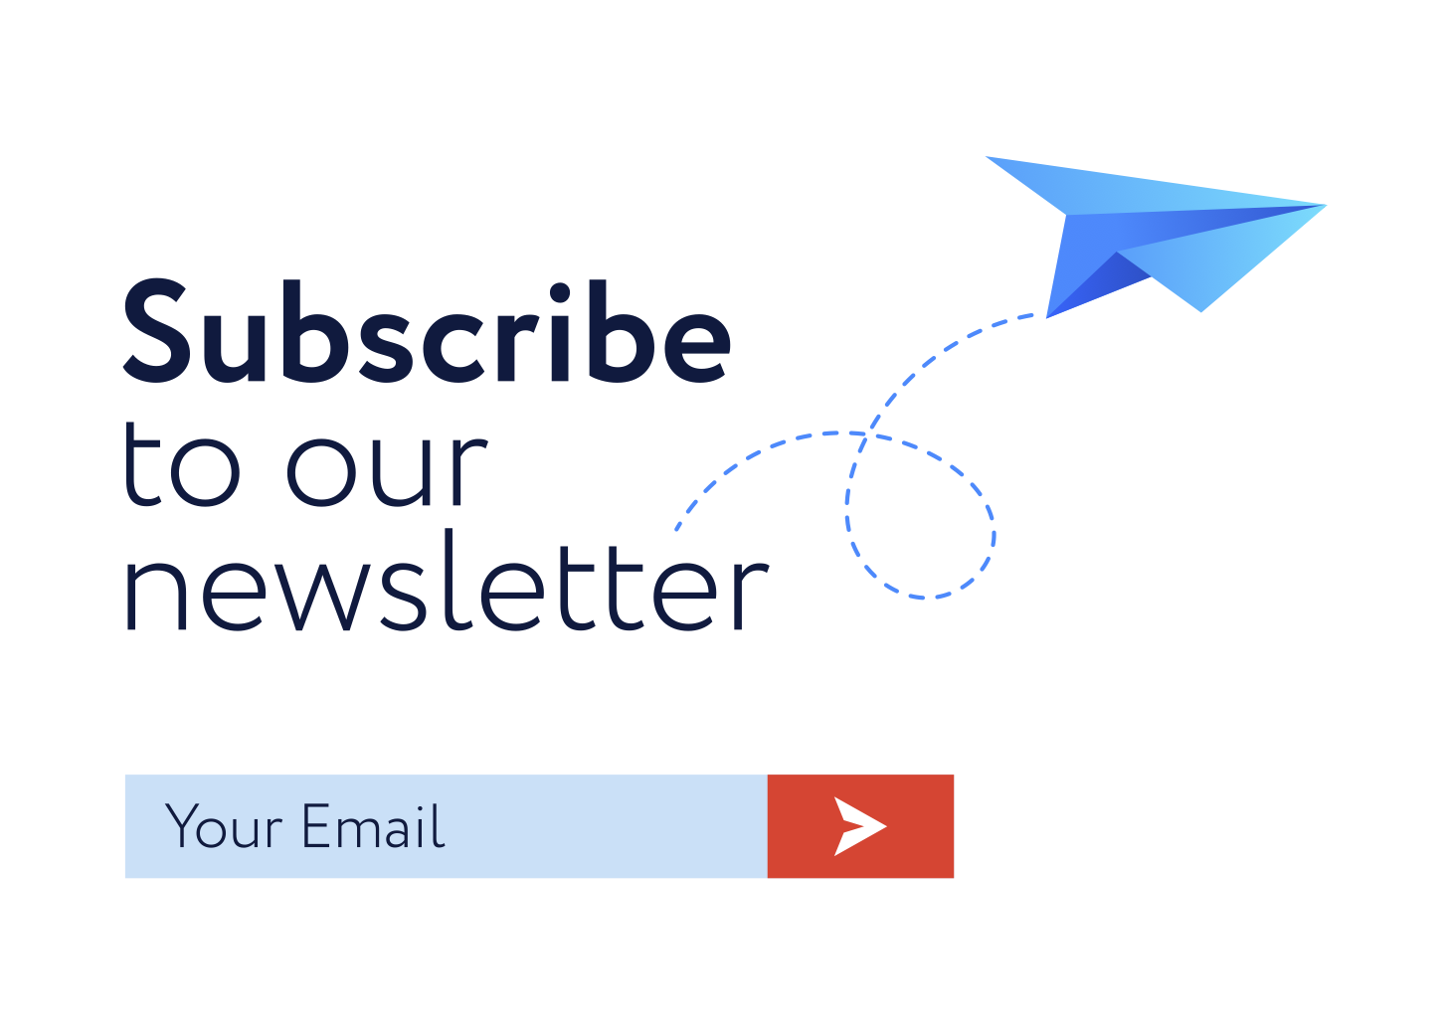 Want to get emails? Subscribe to our newsletter!